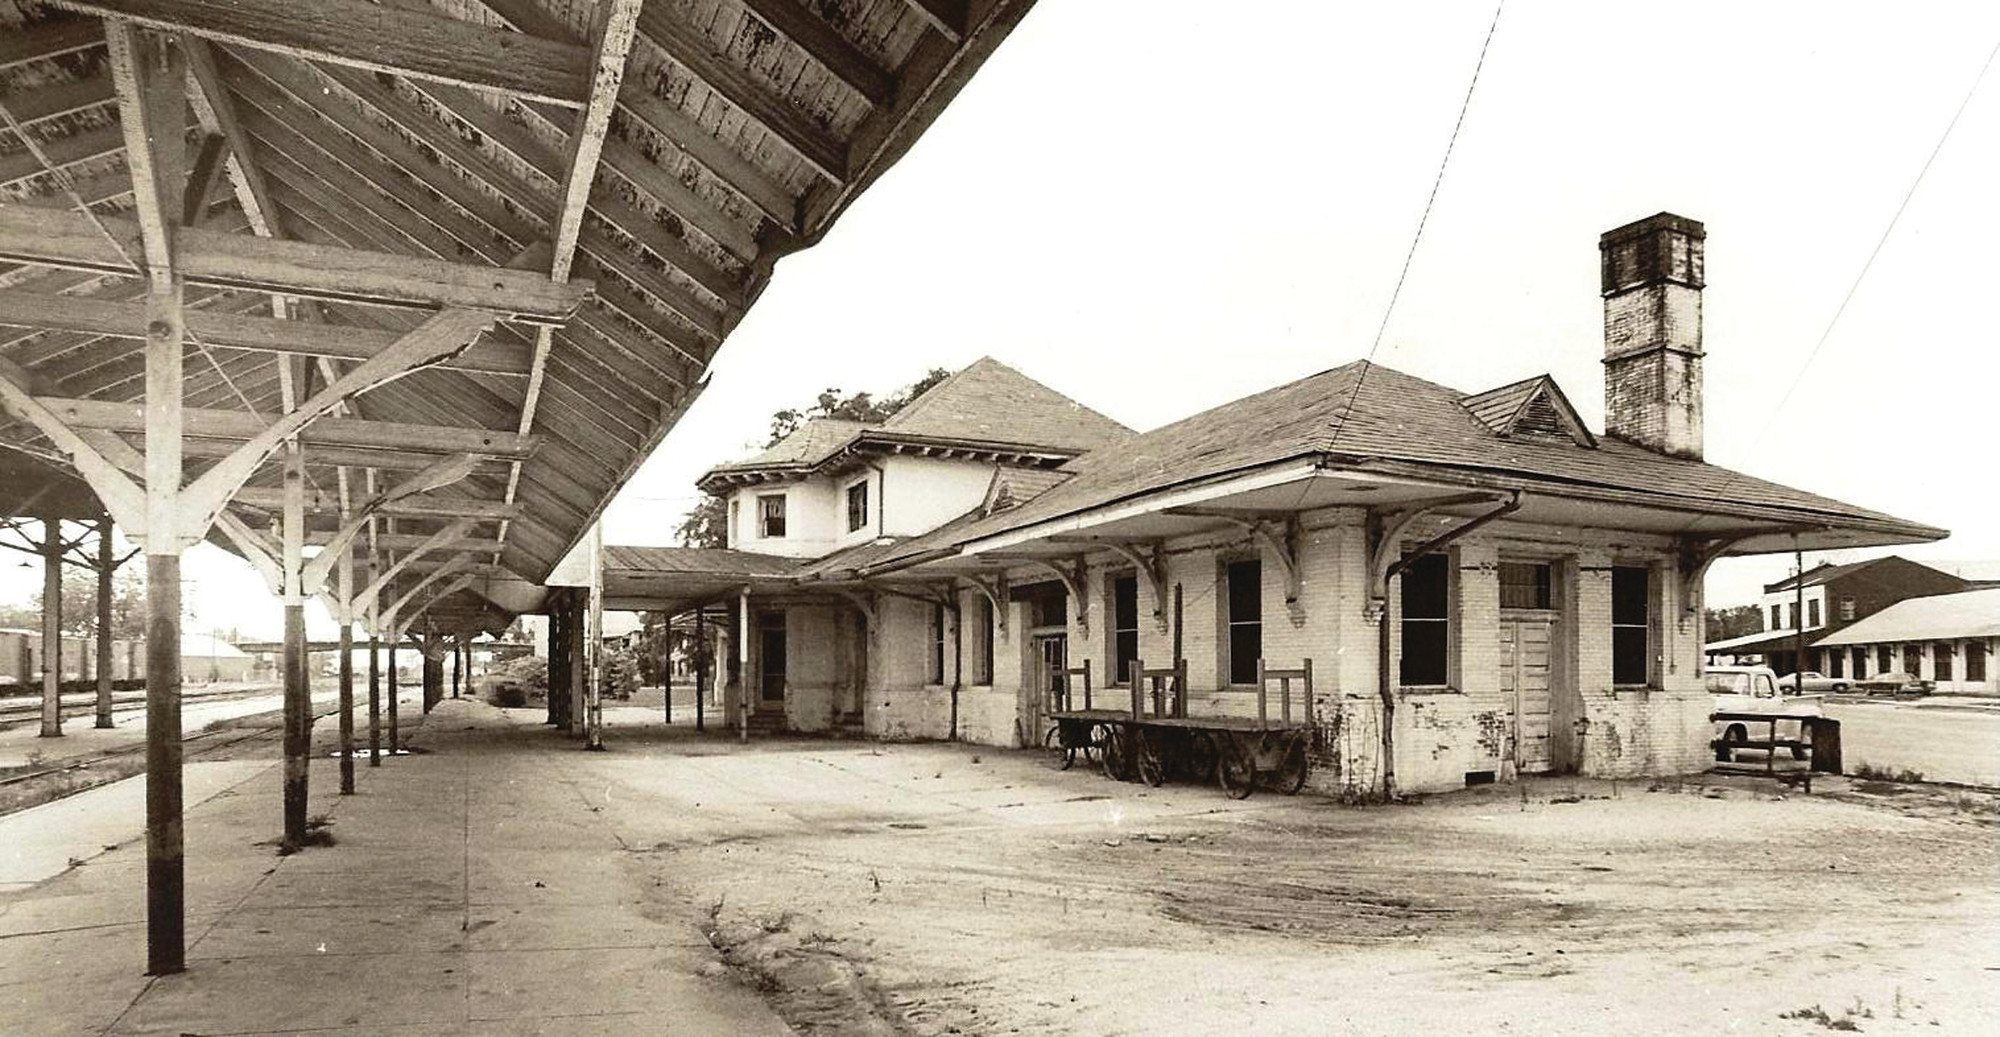 The old Sumter train station was located east of Harvin Street and was torn down circa 1972. Many Sumterites used to venture near and far by rail.